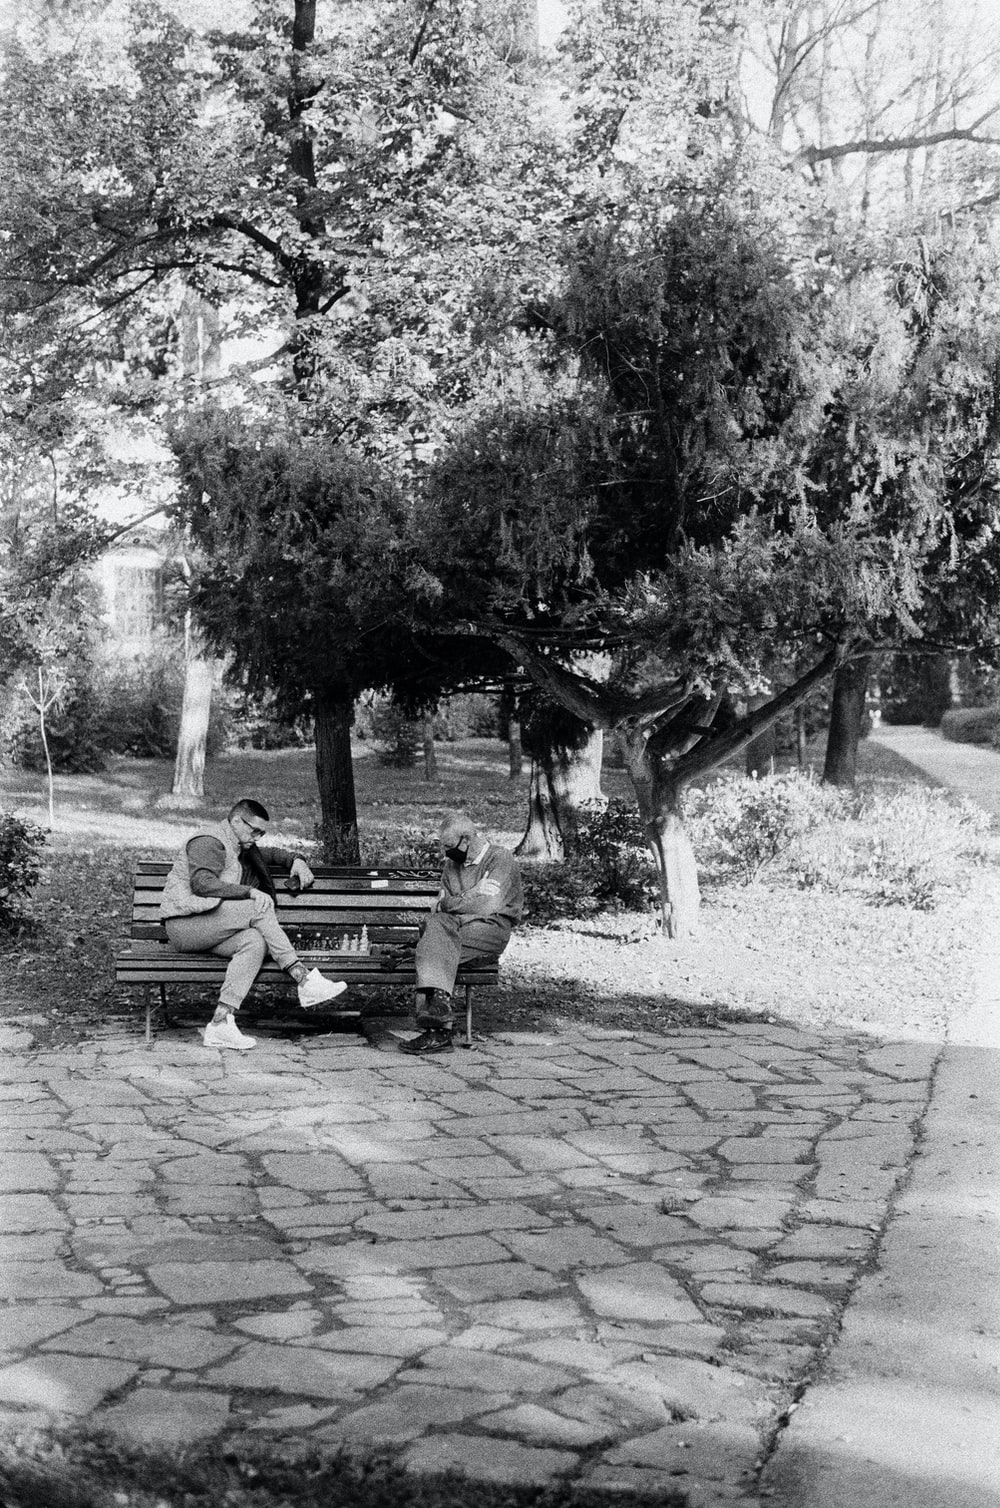 grayscale photo of 2 men sitting on bench near trees